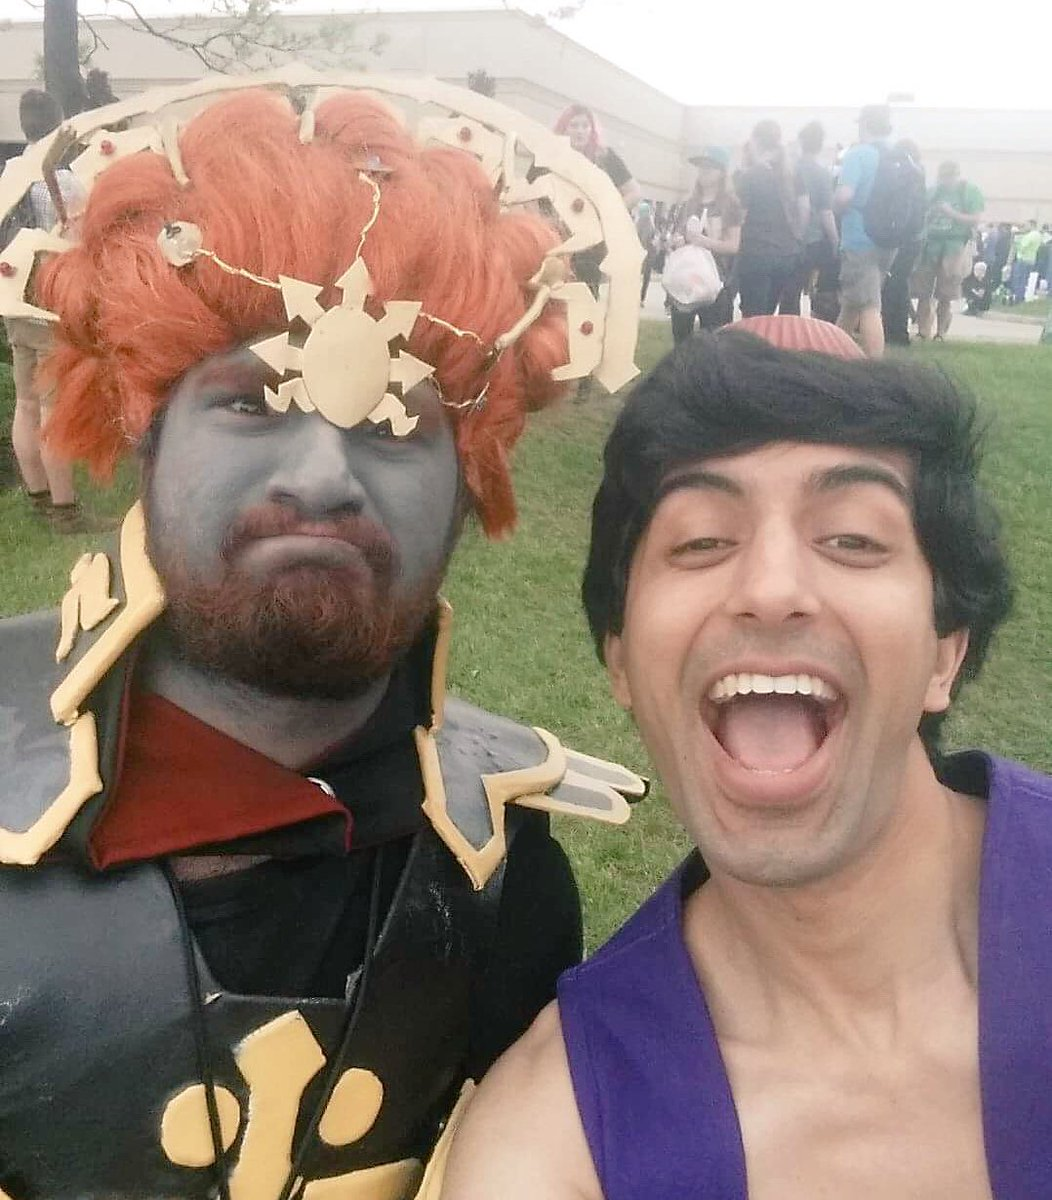 @das_hat was at #animenorth2017 today as #Aladin  Did you see him?   #AnimeNorth #Convention #Con #Anime #Disney #NerdlingRush<br>http://pic.twitter.com/tFnaALH0MV